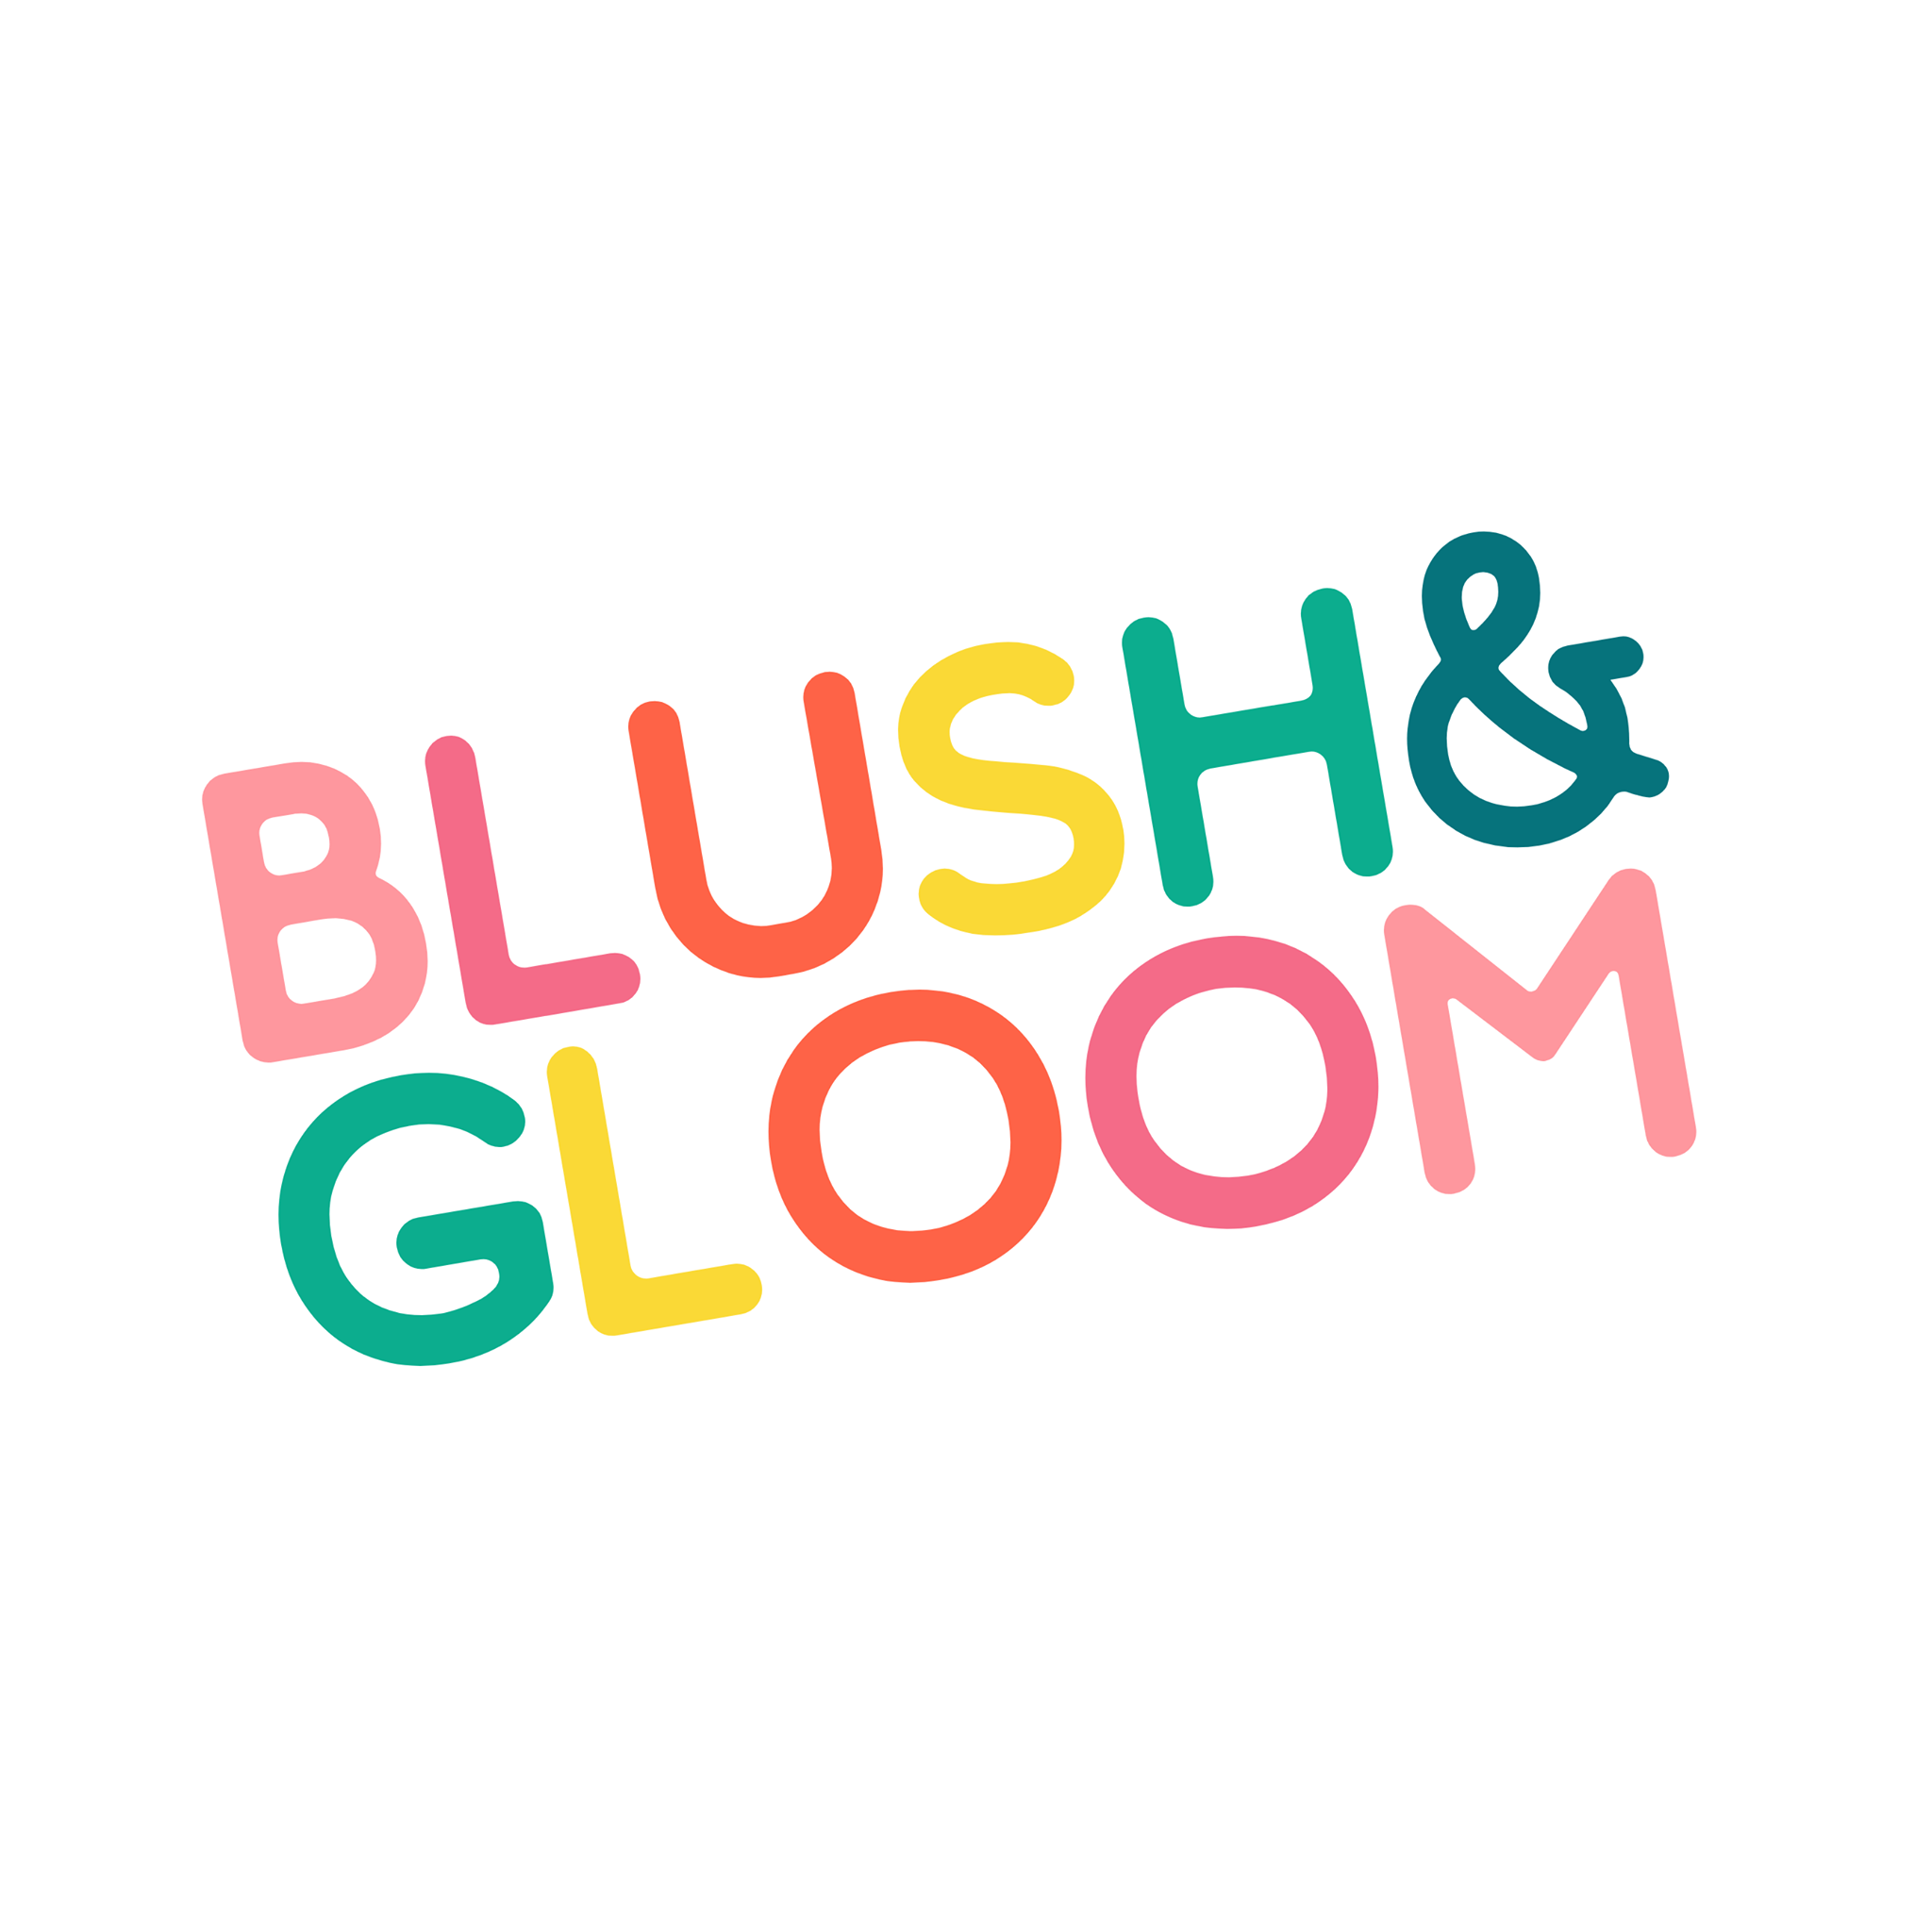 Blush & Gloom